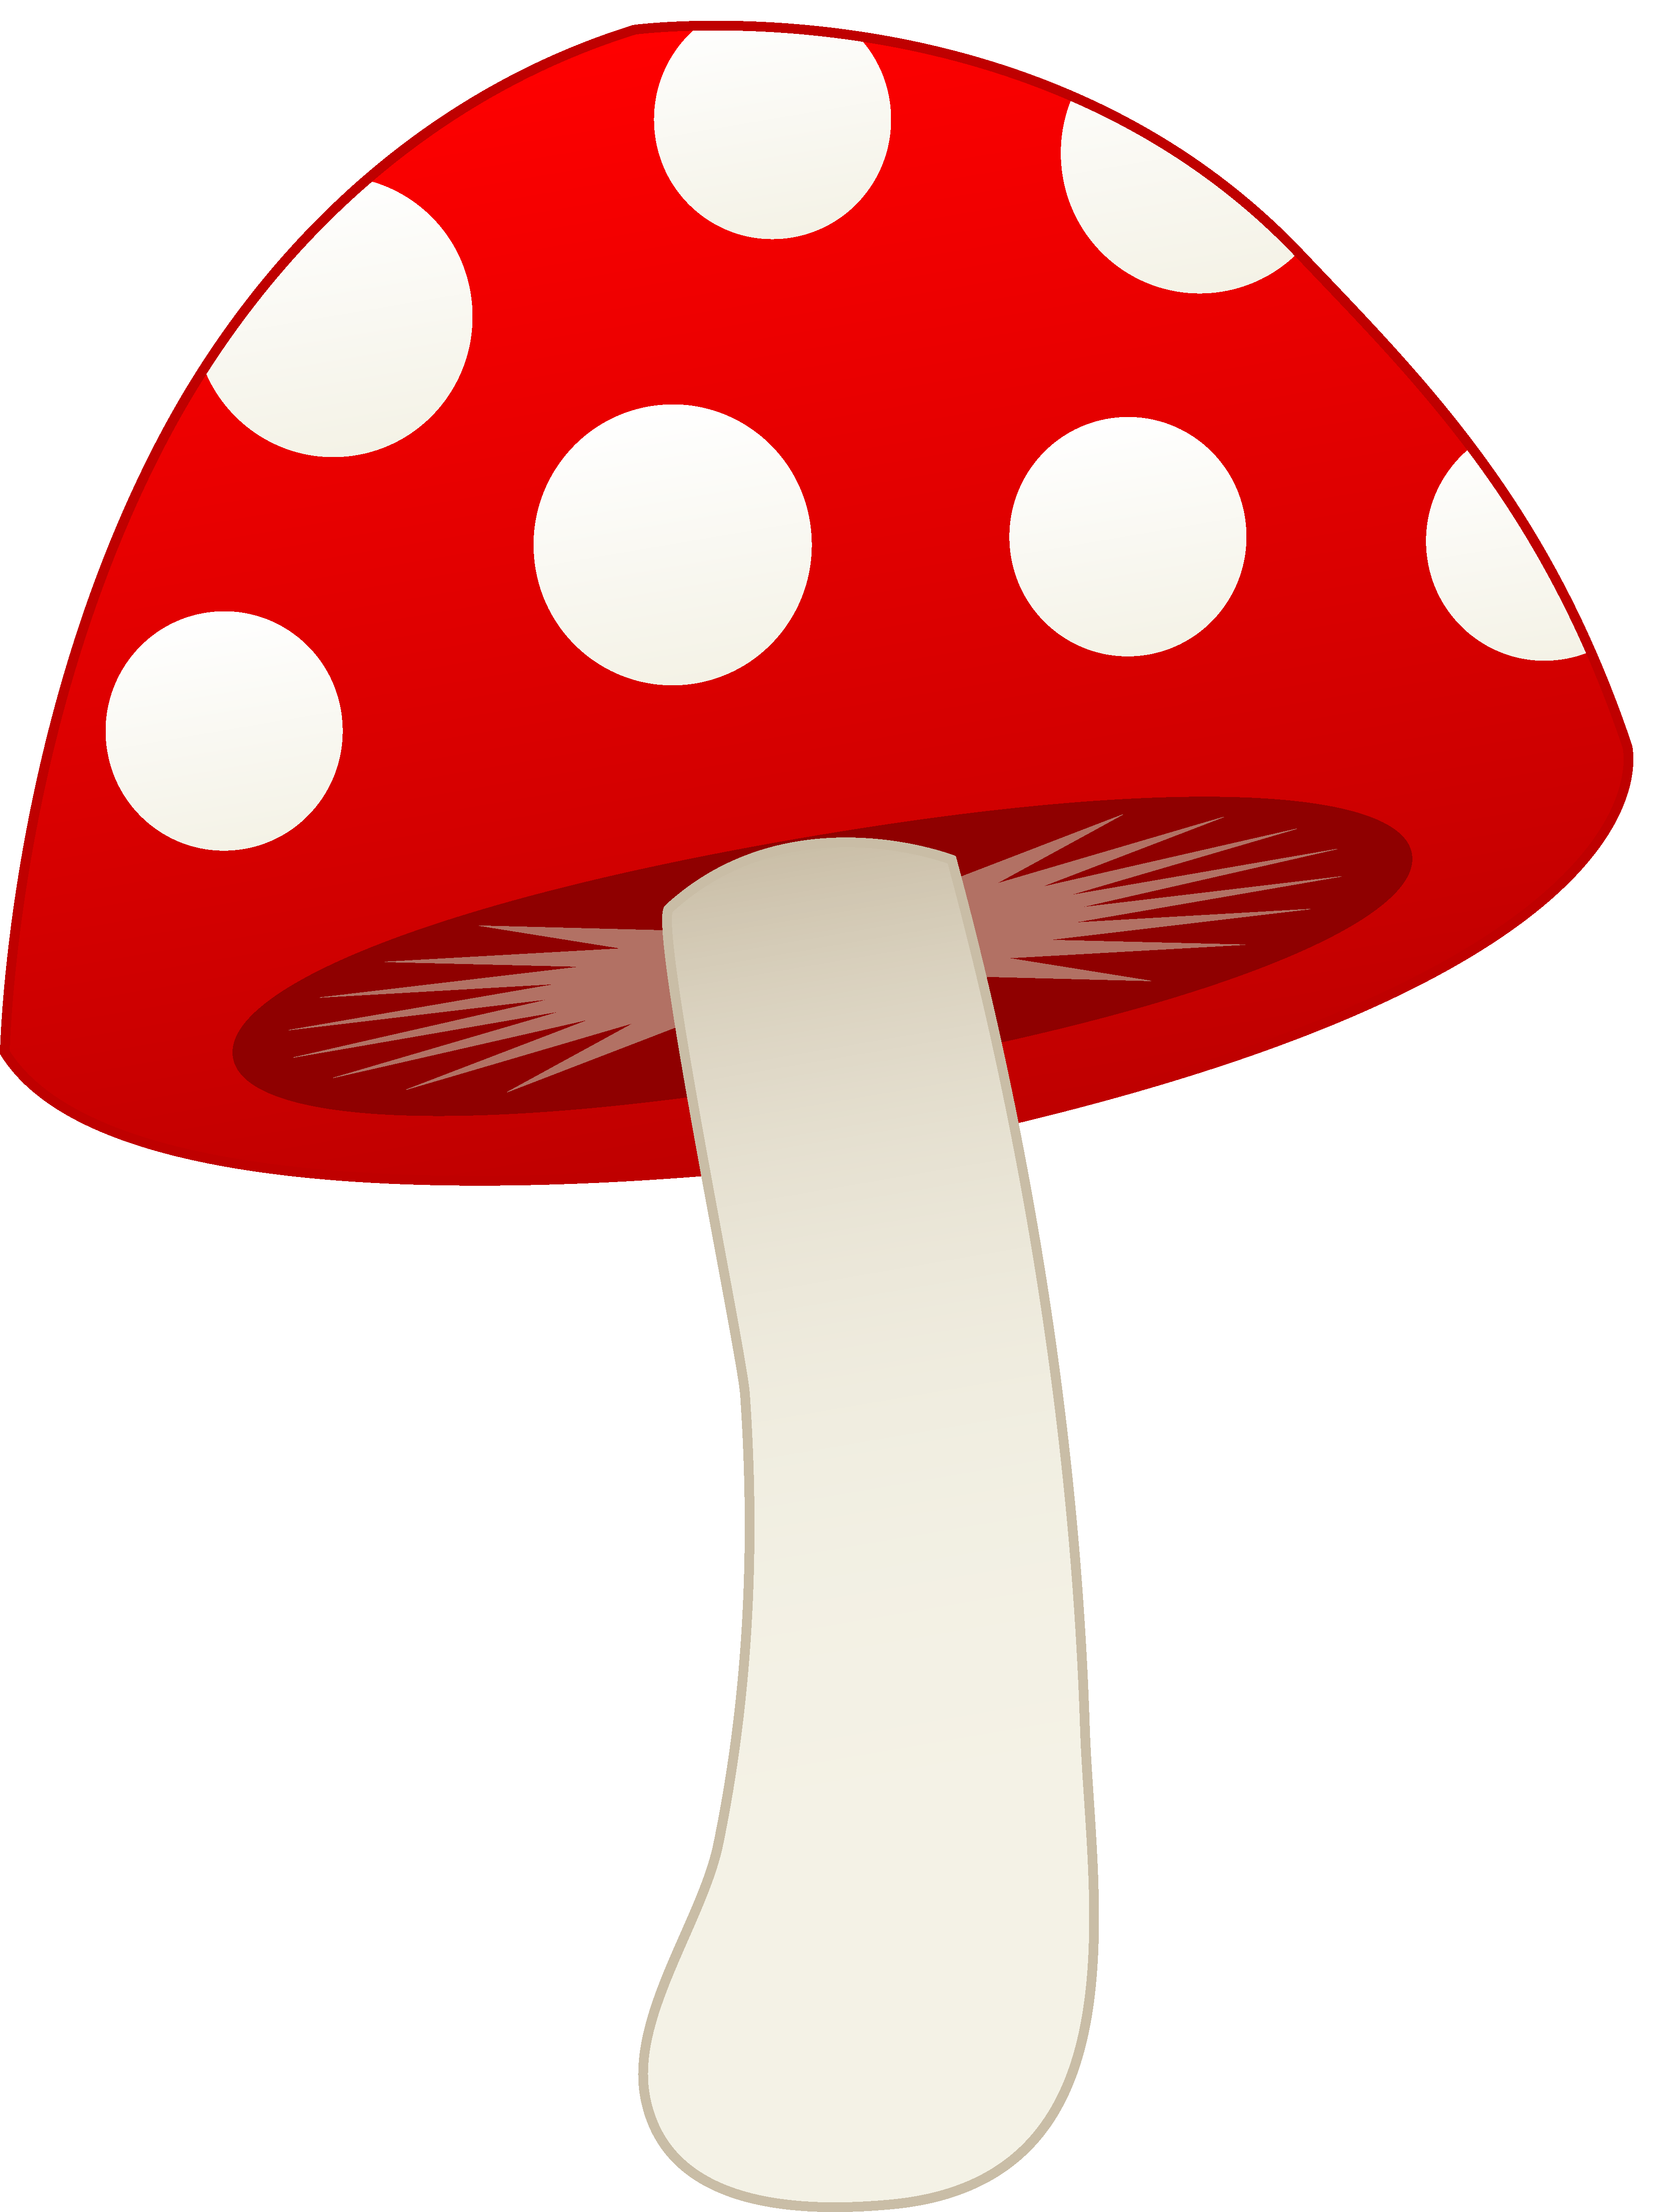 Toadstool clipart black and white picture stock Free Toadstool Clipart, Download Free Clip Art, Free Clip ... picture stock